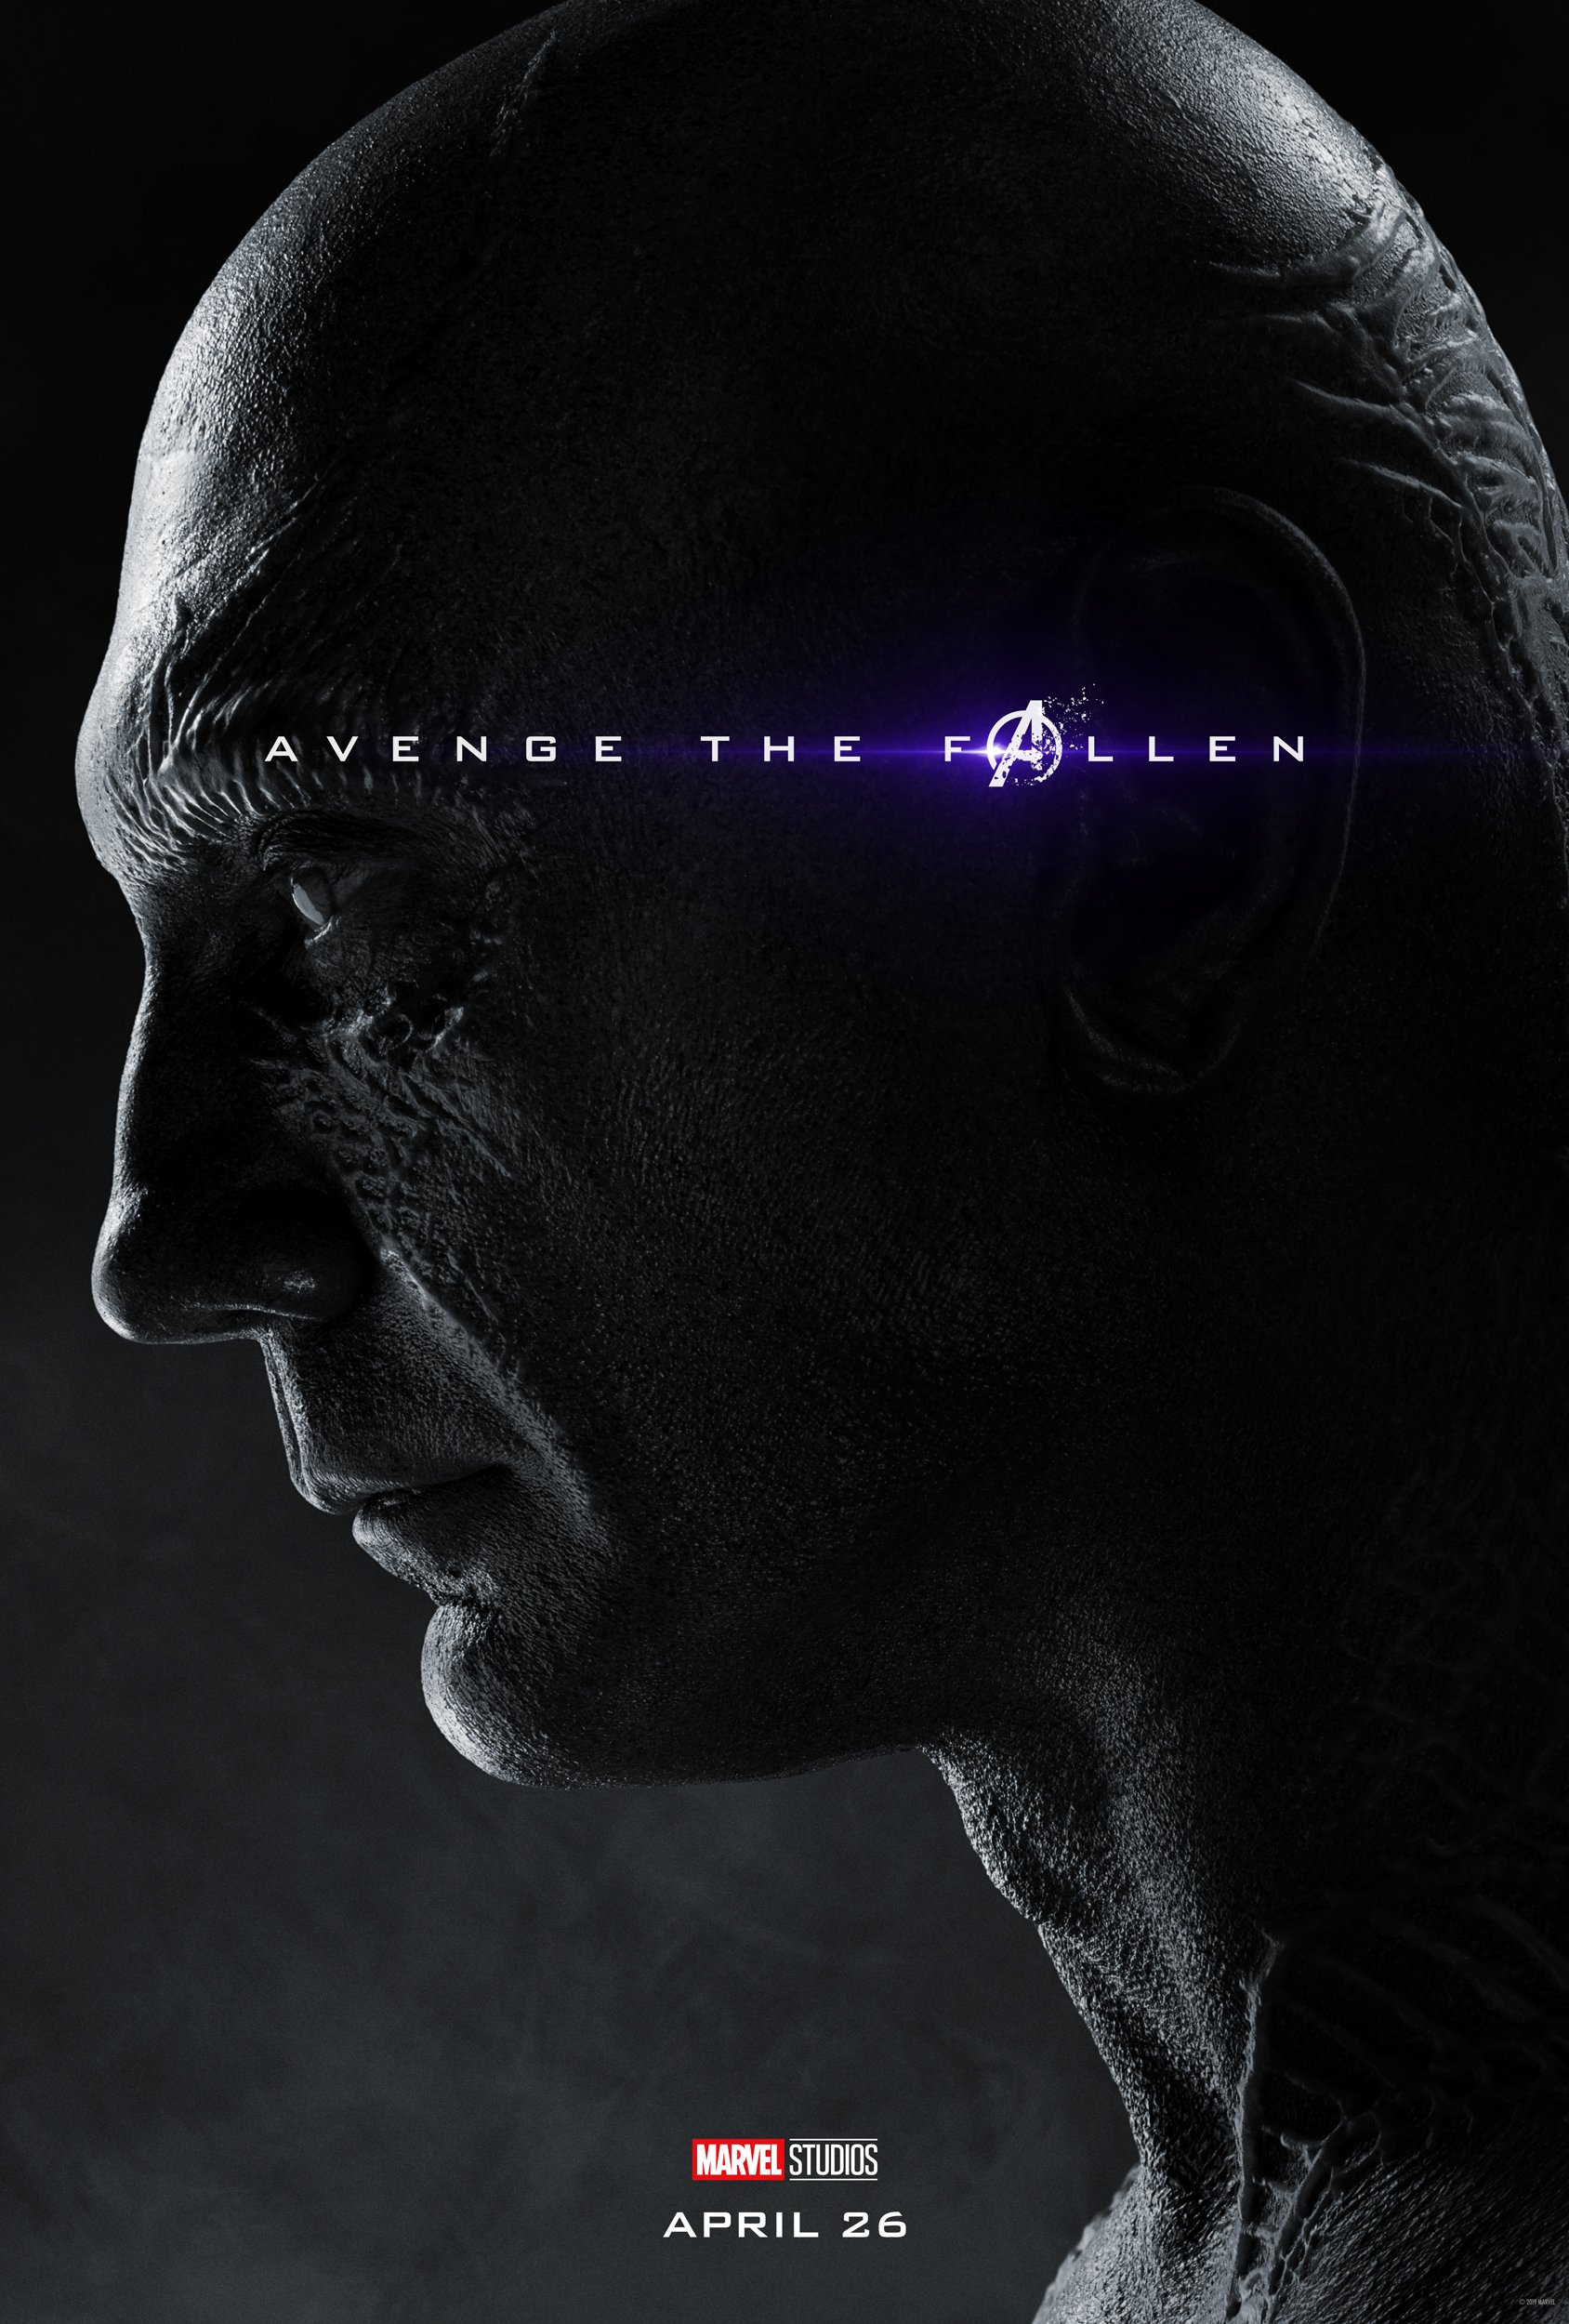 Avengers Endgame Chinese Poster Features Some Awesome New